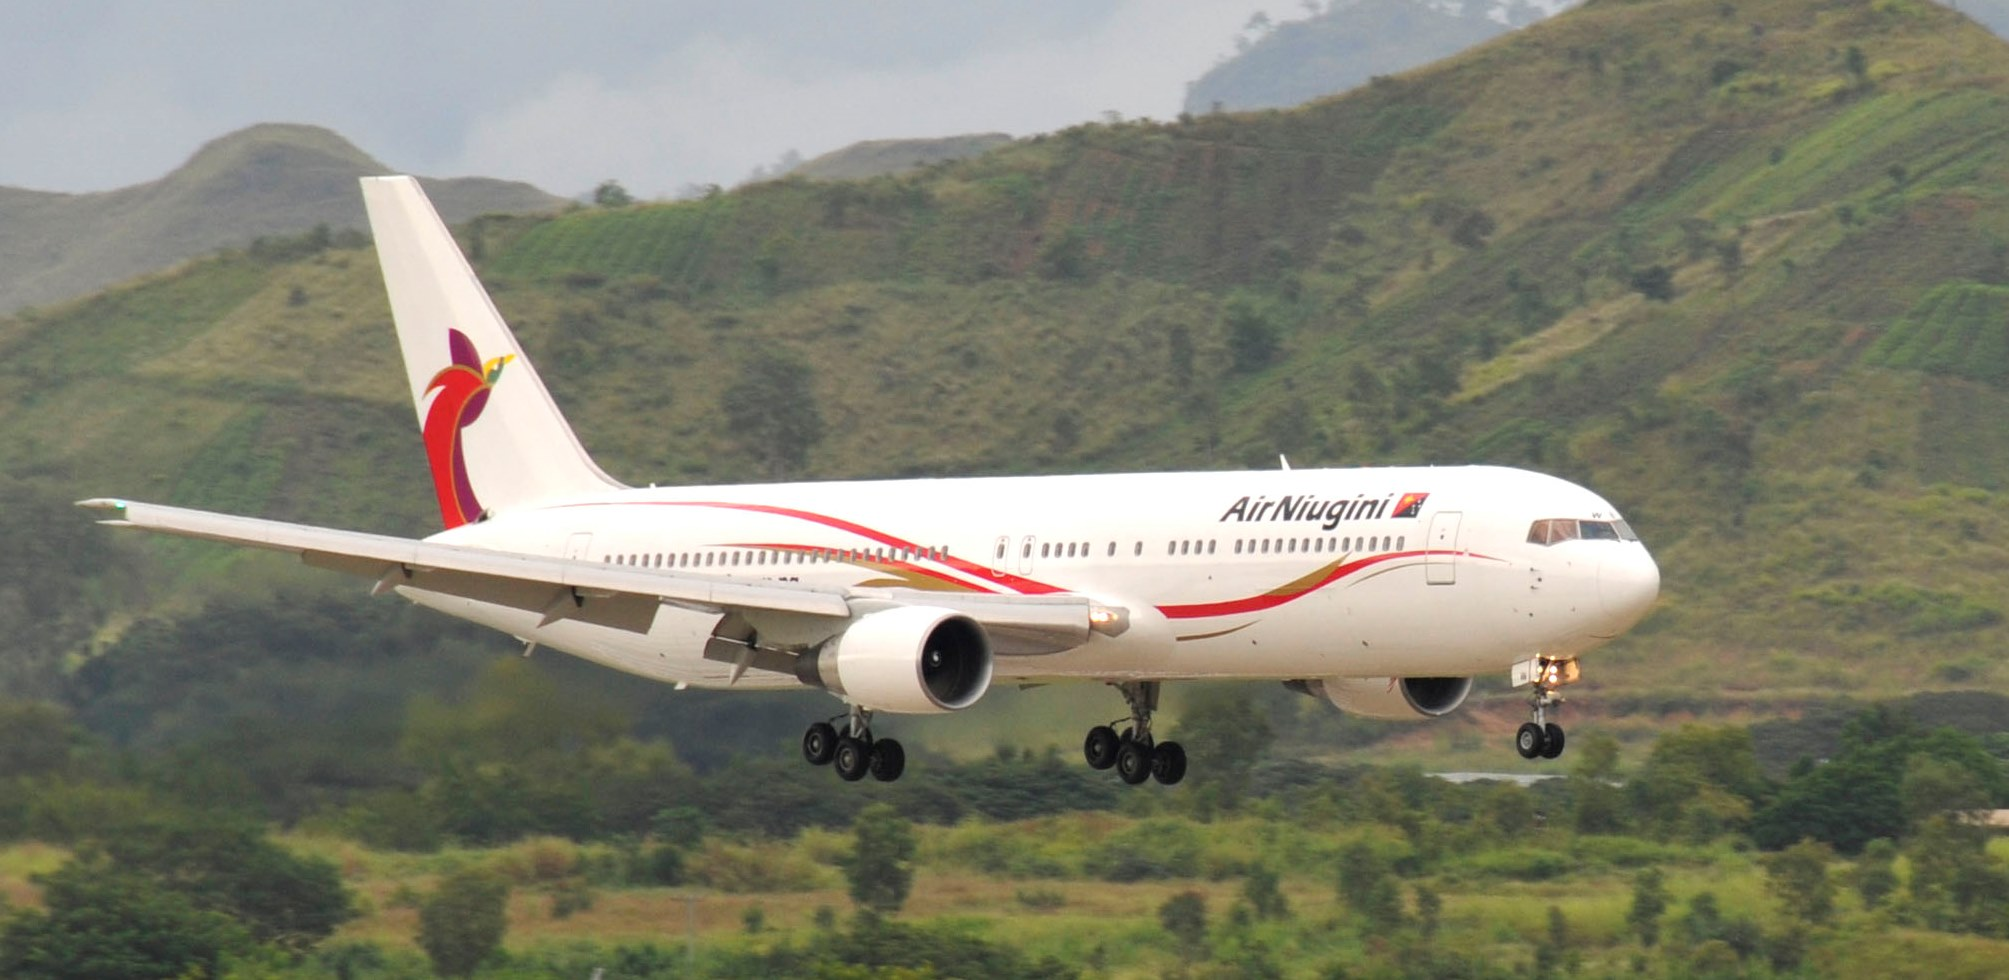 Air Niugini Ready To Take Up The Cairns/Hong Kong Route via Port Moresby